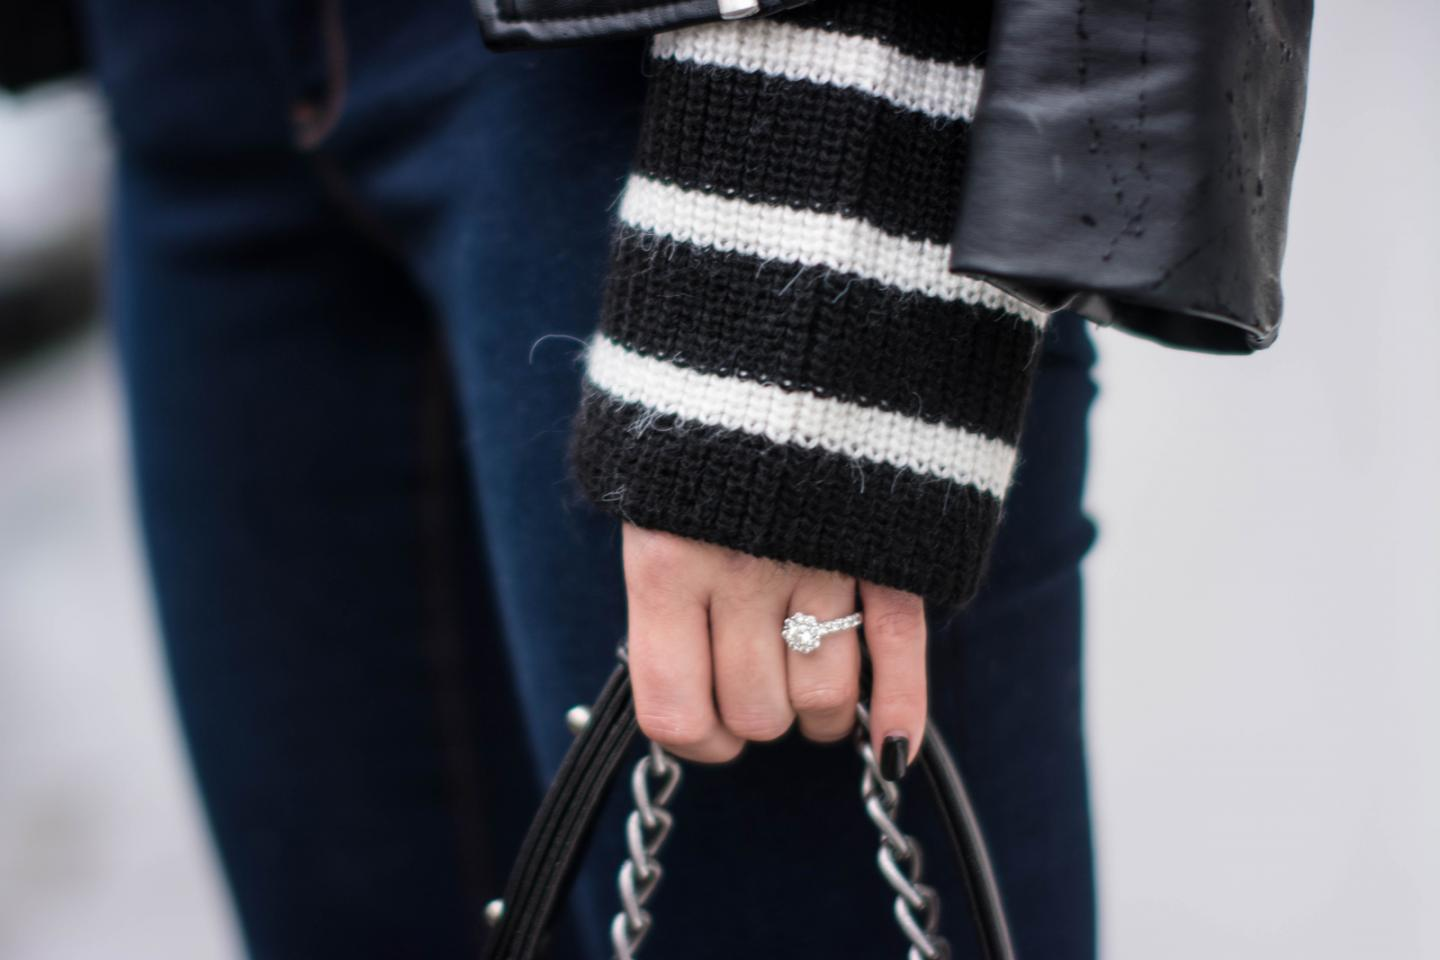 EJSTYLE - Zara black white striped jumper sweater, leather biker jacket, engagement ring, OOTD, outfit details